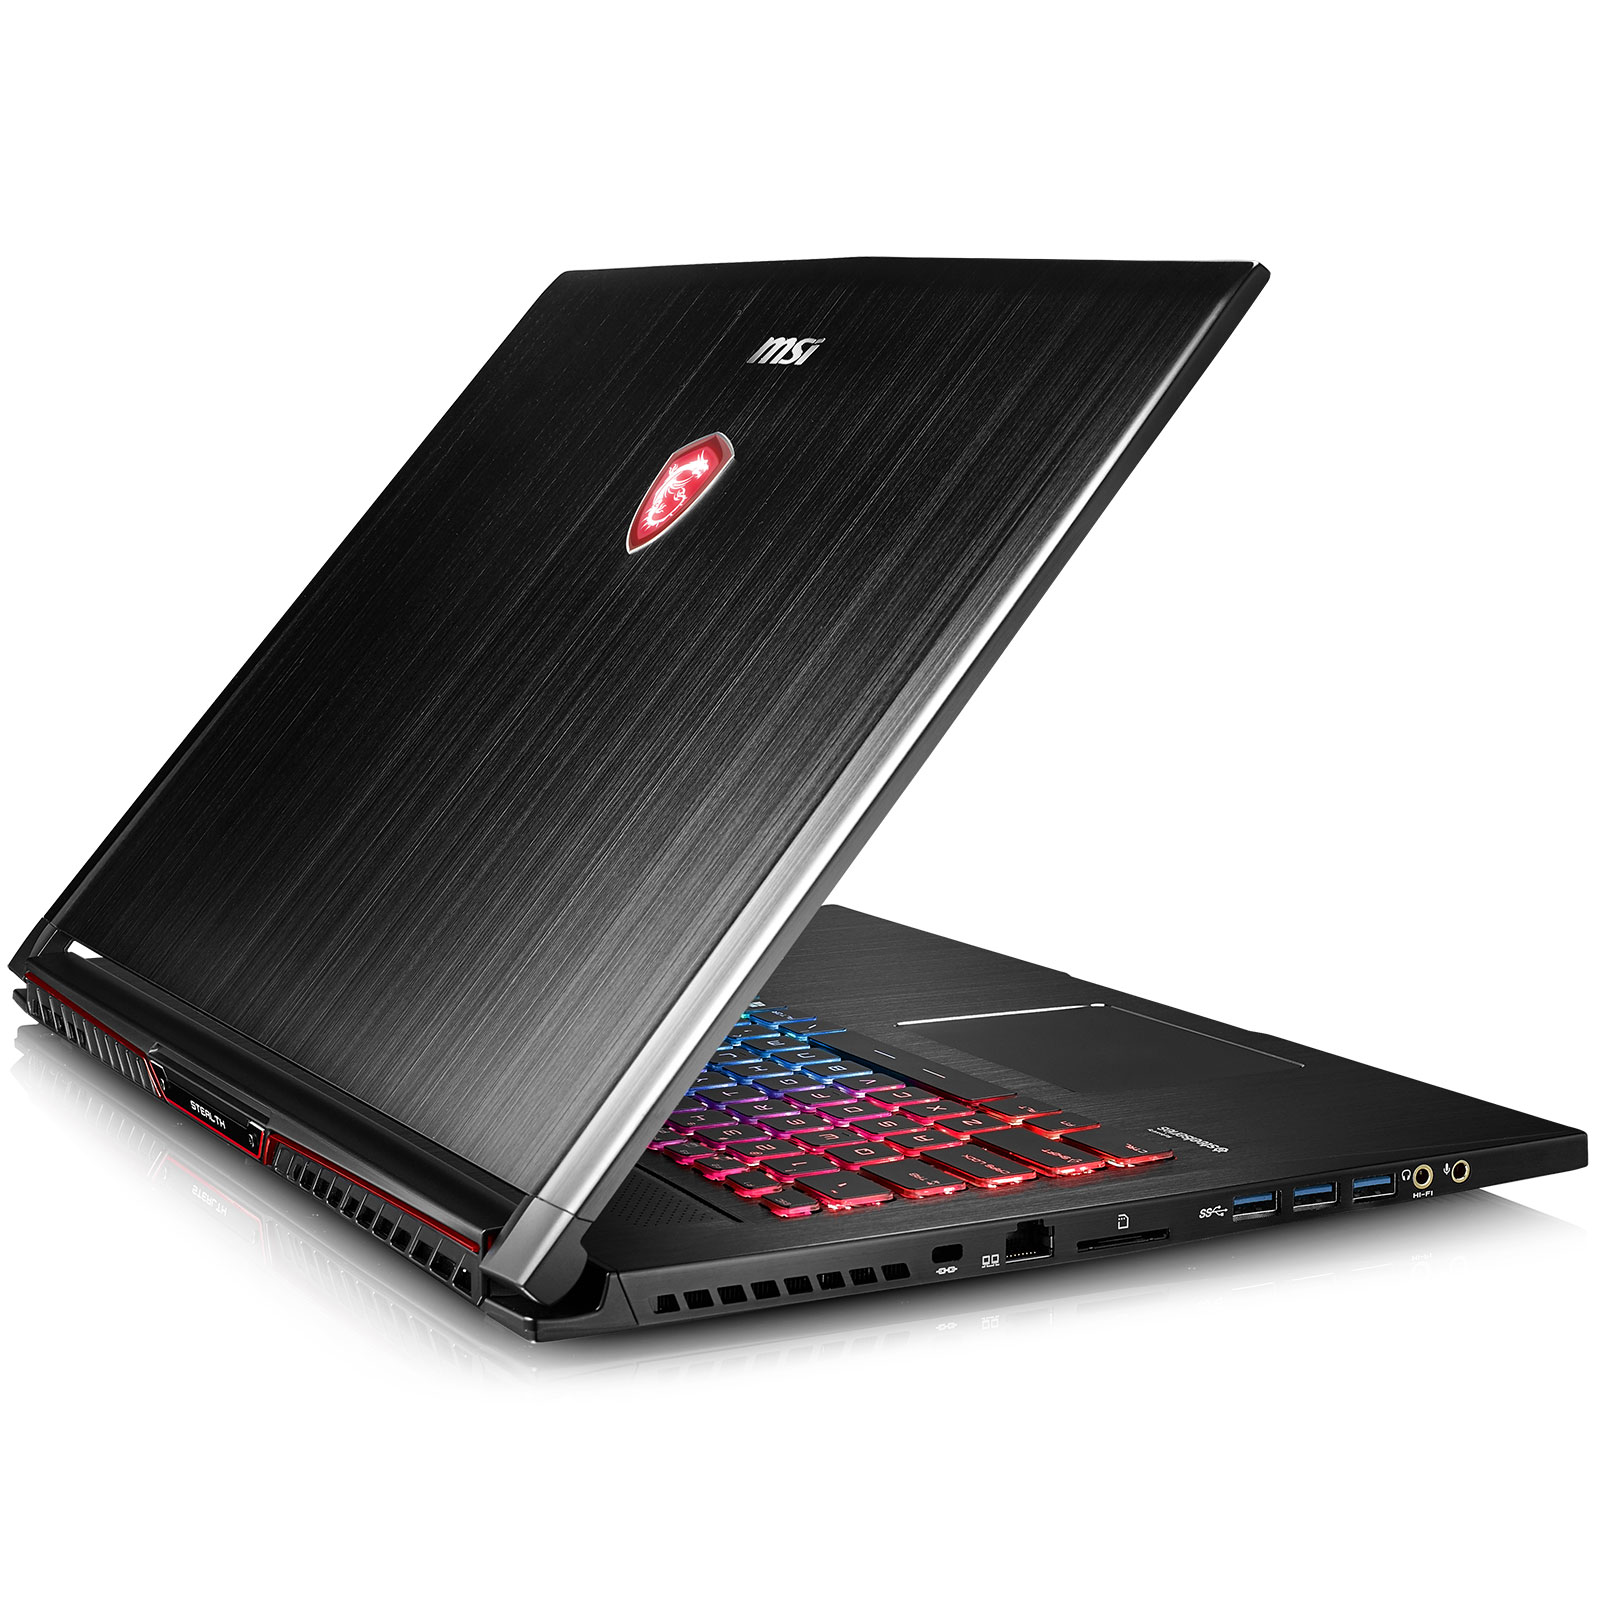 MSI 9S7-17B312-013 - PC portable MSI - Cybertek.fr - 3